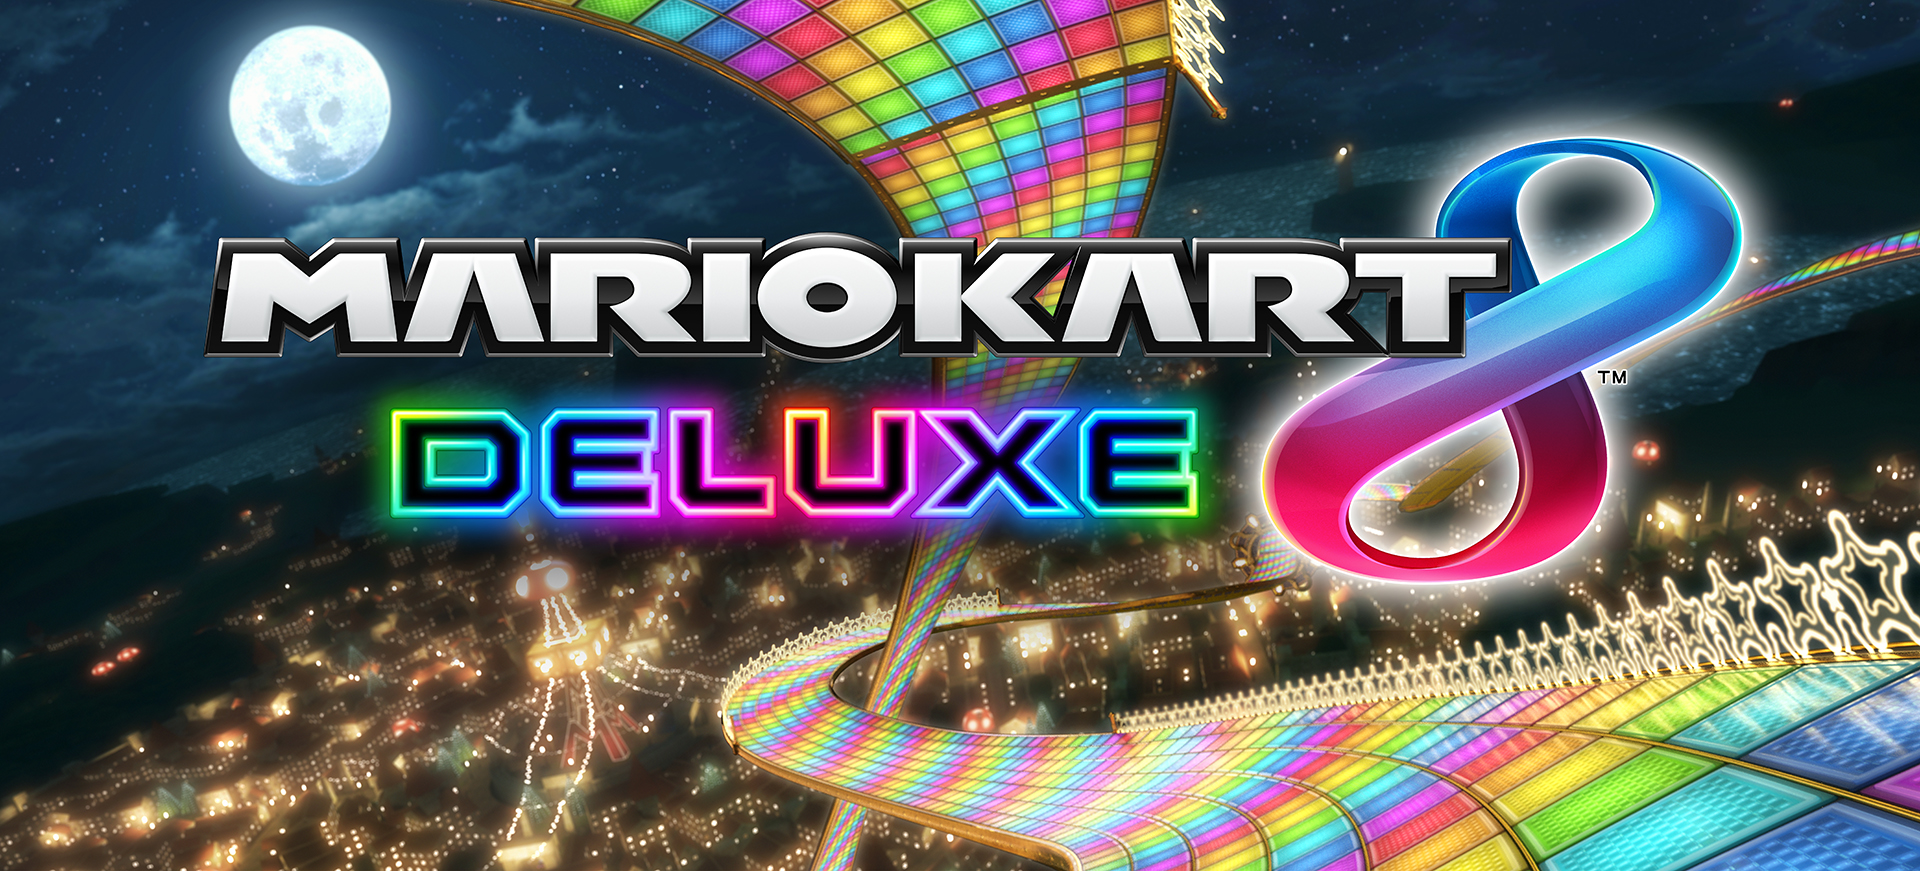 annunciato mario kart 8 deluxe per nintendo switch gamesource. Black Bedroom Furniture Sets. Home Design Ideas